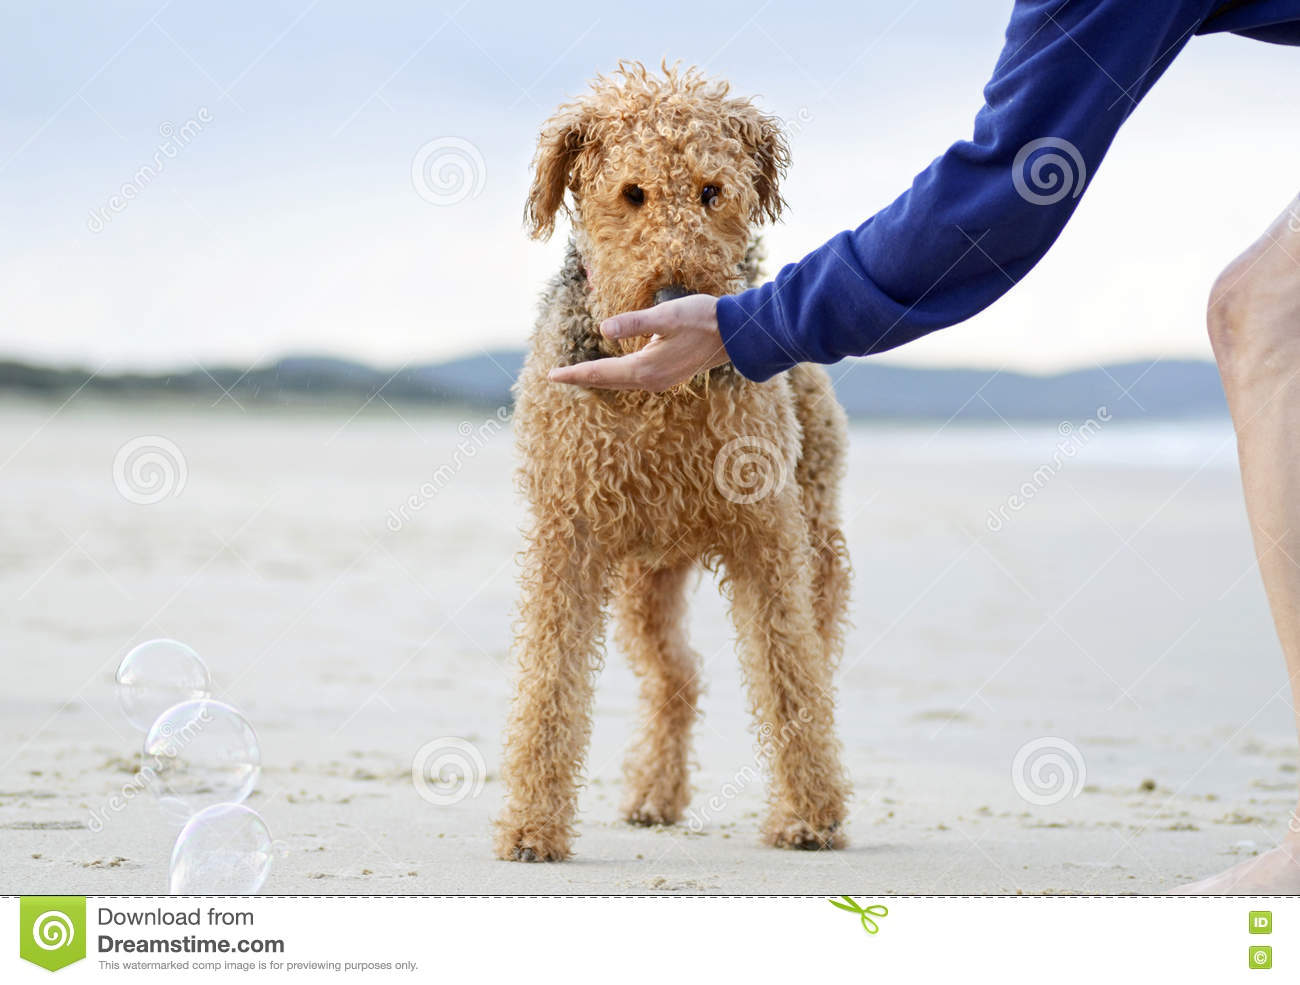 Cute Family Member On The Beach RoyaltyFree Illustration  CartoonDealer.com 84775722